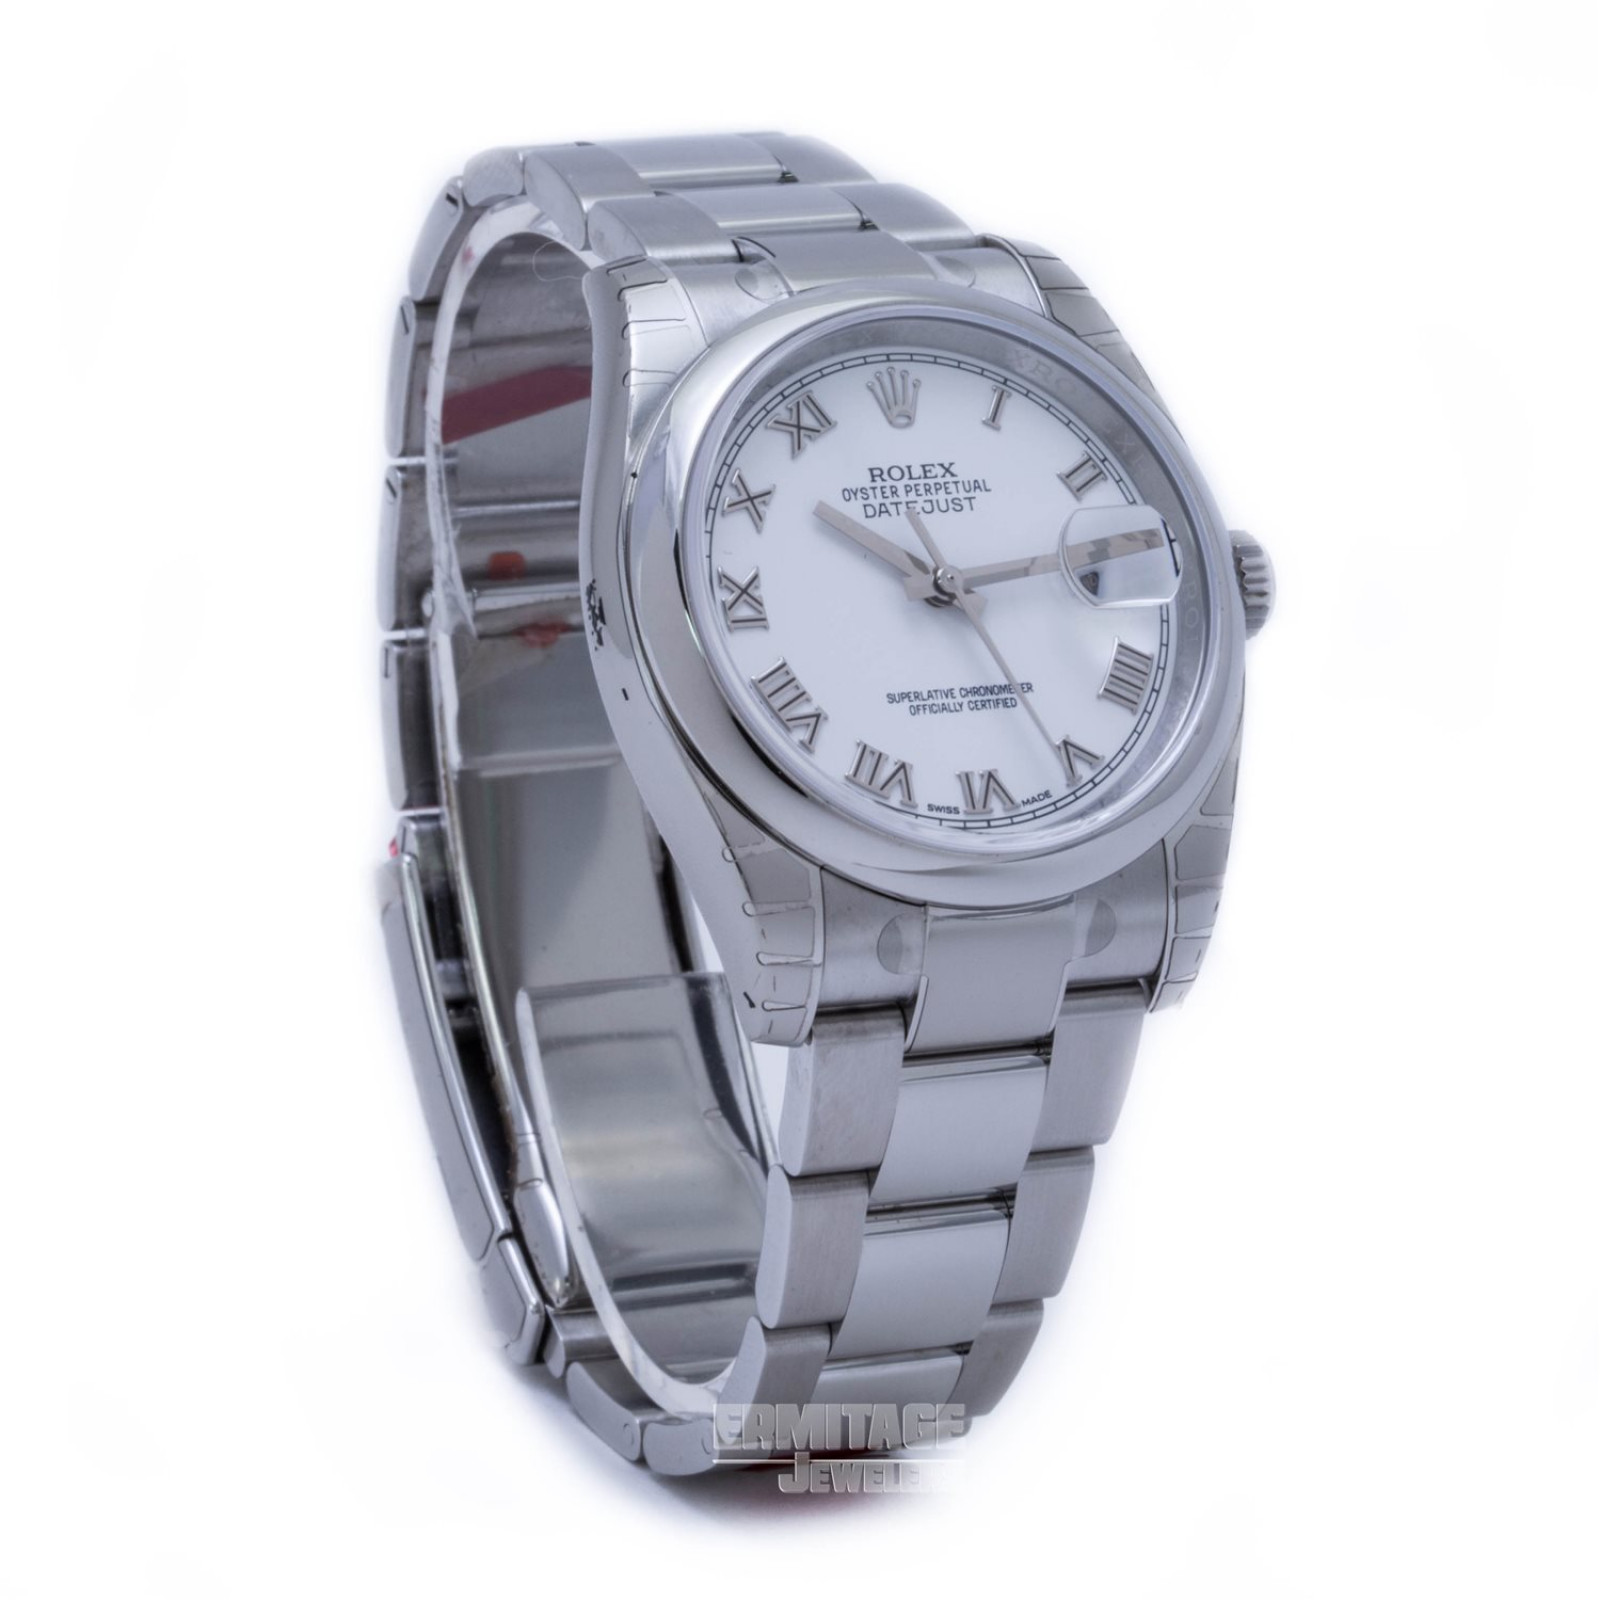 Rolex Datejust 116200 with White Dial